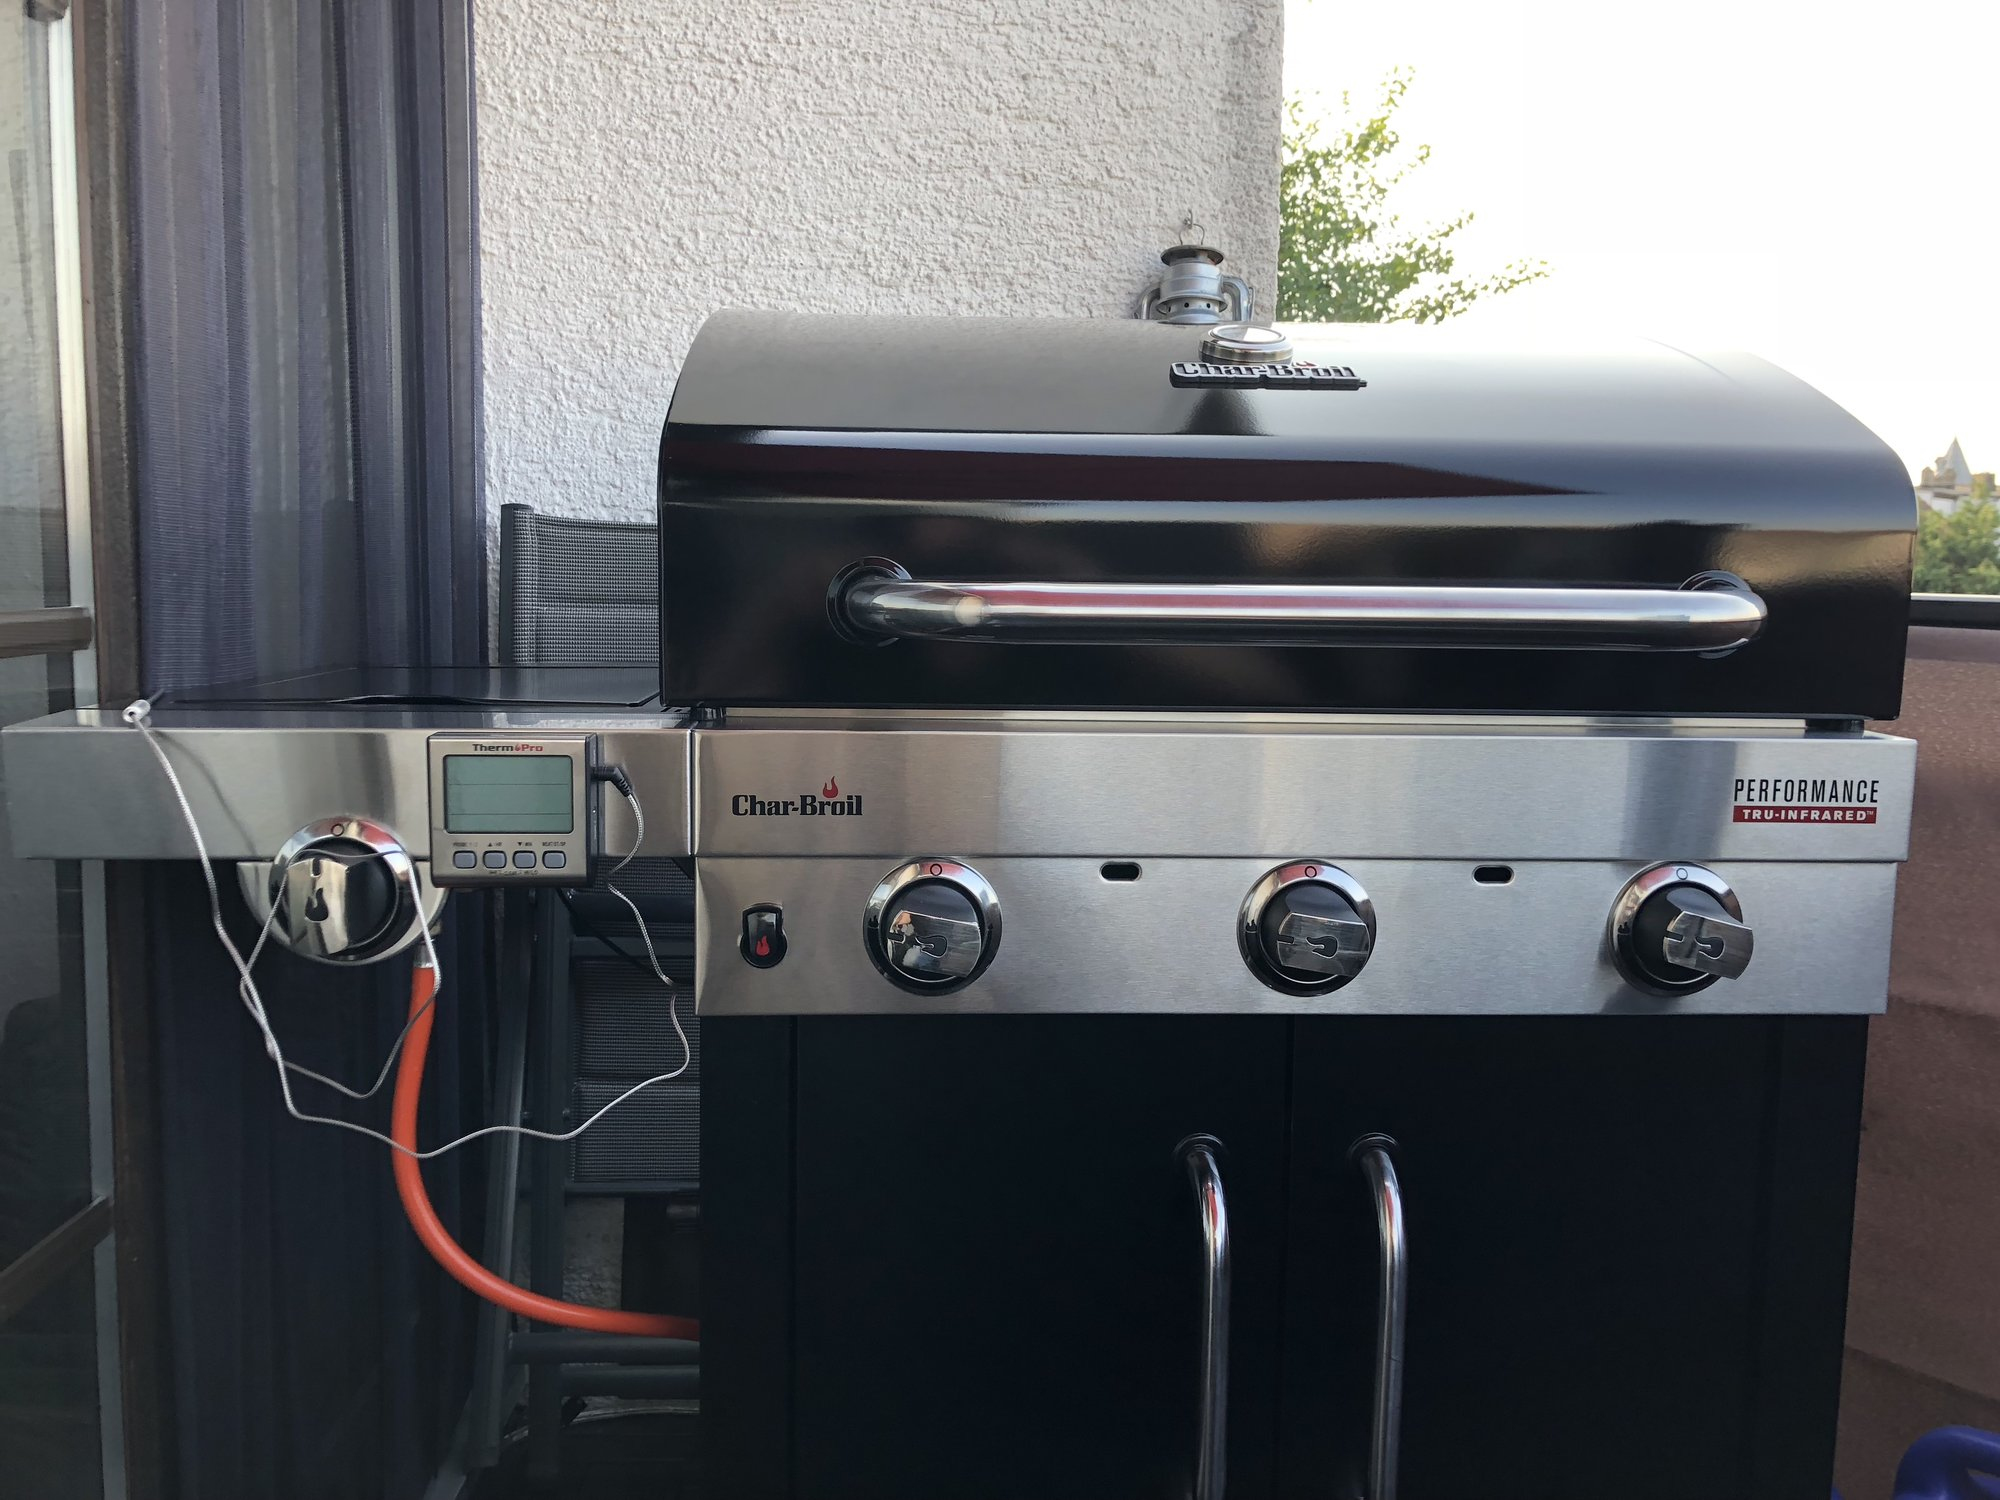 Rösle Gasgrill Made In China : Char broil performance 340s erfahrungsberichte seite 6